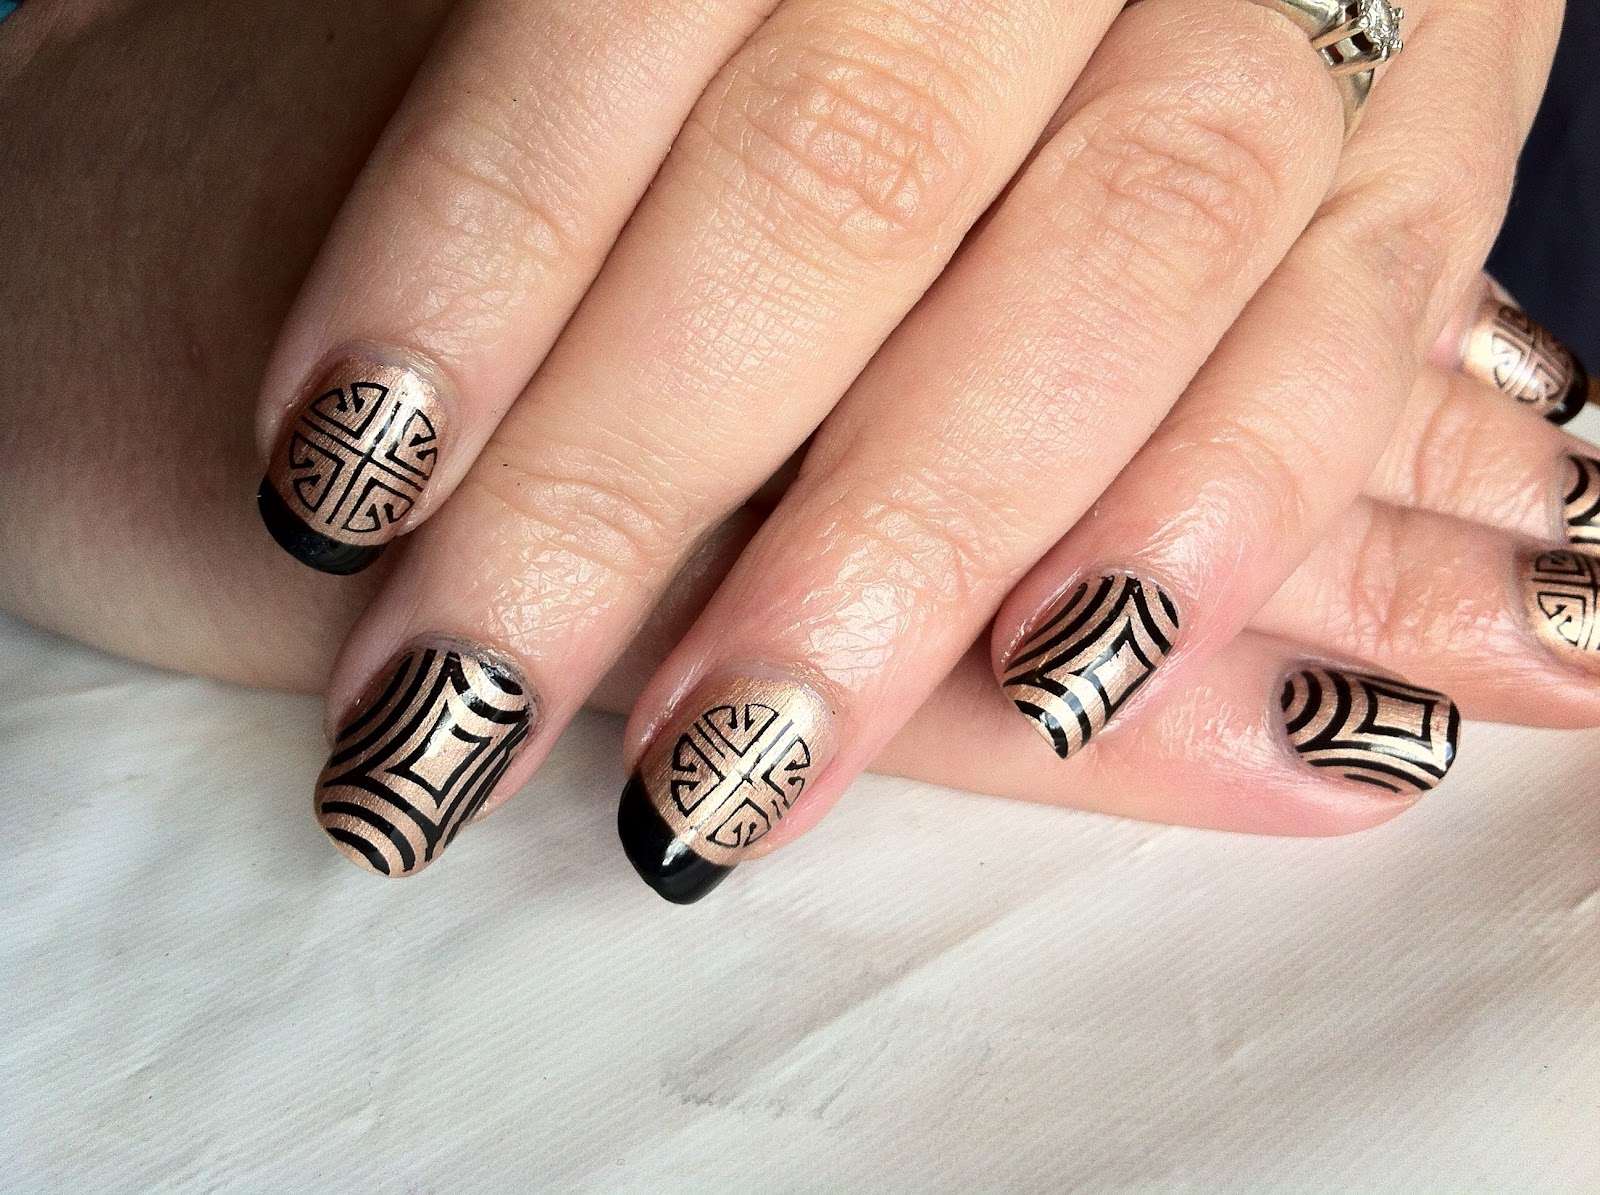 Brush up and polish up cnd shellac nail art iced cappuccino cnd shellac nail art iced cappuccino and konad stamping prinsesfo Images